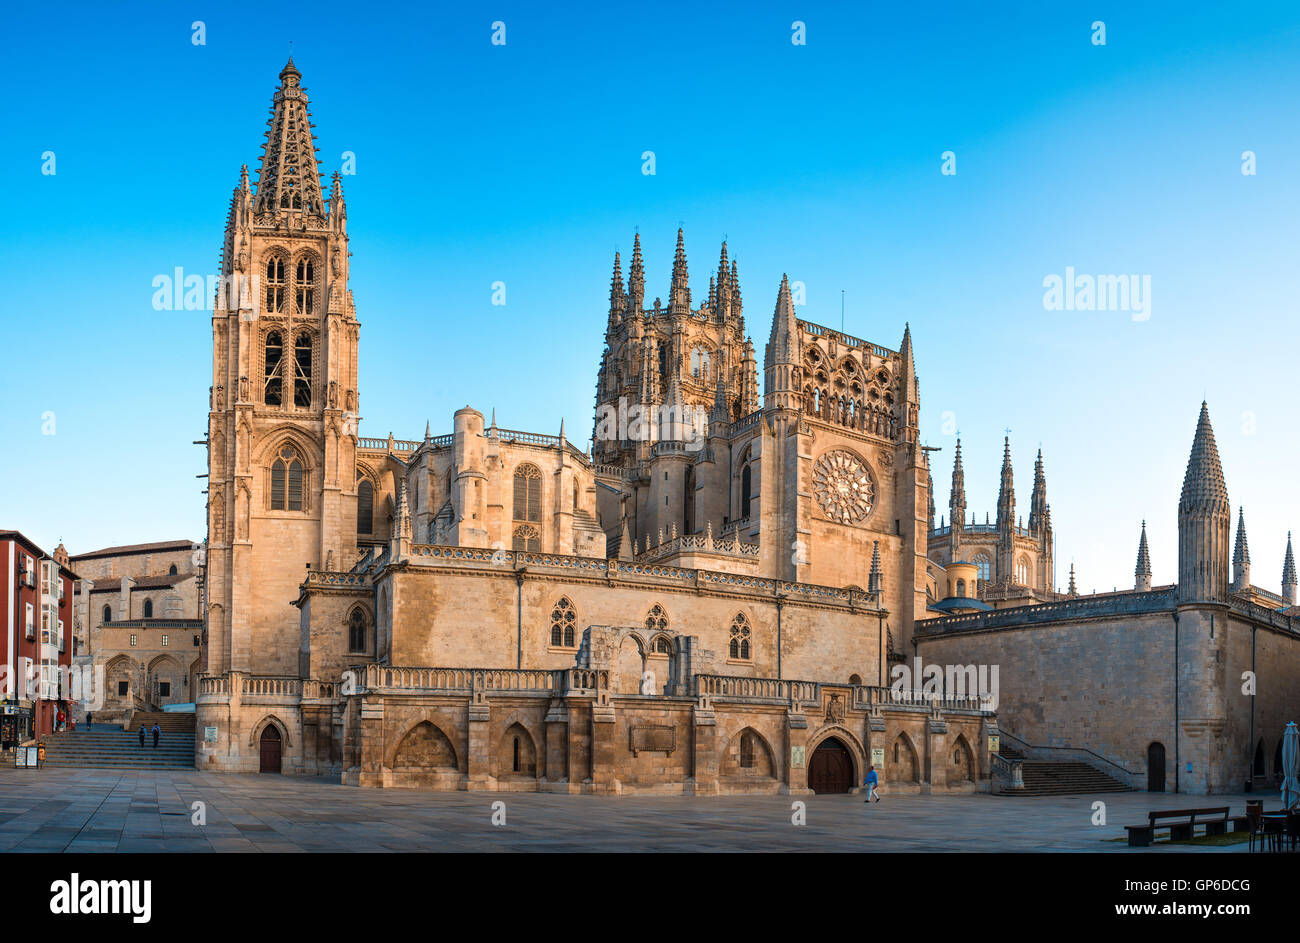 BURGOS, SPAIN - 1 SEPTEMBER, 2016: View of the Cathedral at sunrise. Construction on Burgos' Gothic Cathedral - Stock Image